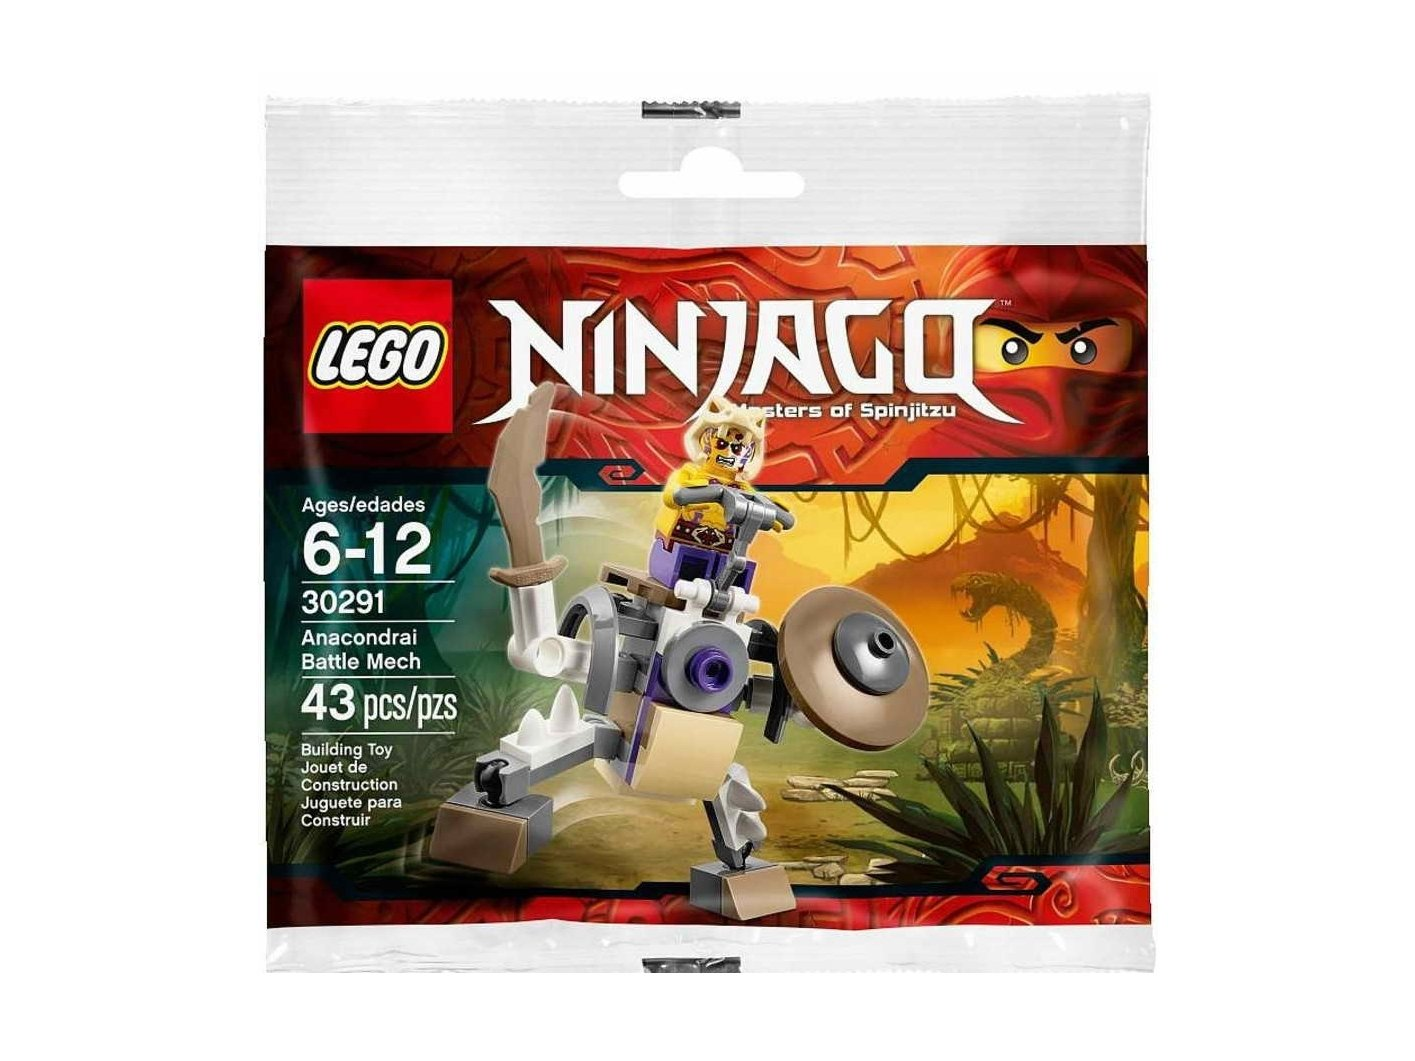 LEGO 30291 Ninjago® Anacondrai Battle Mech